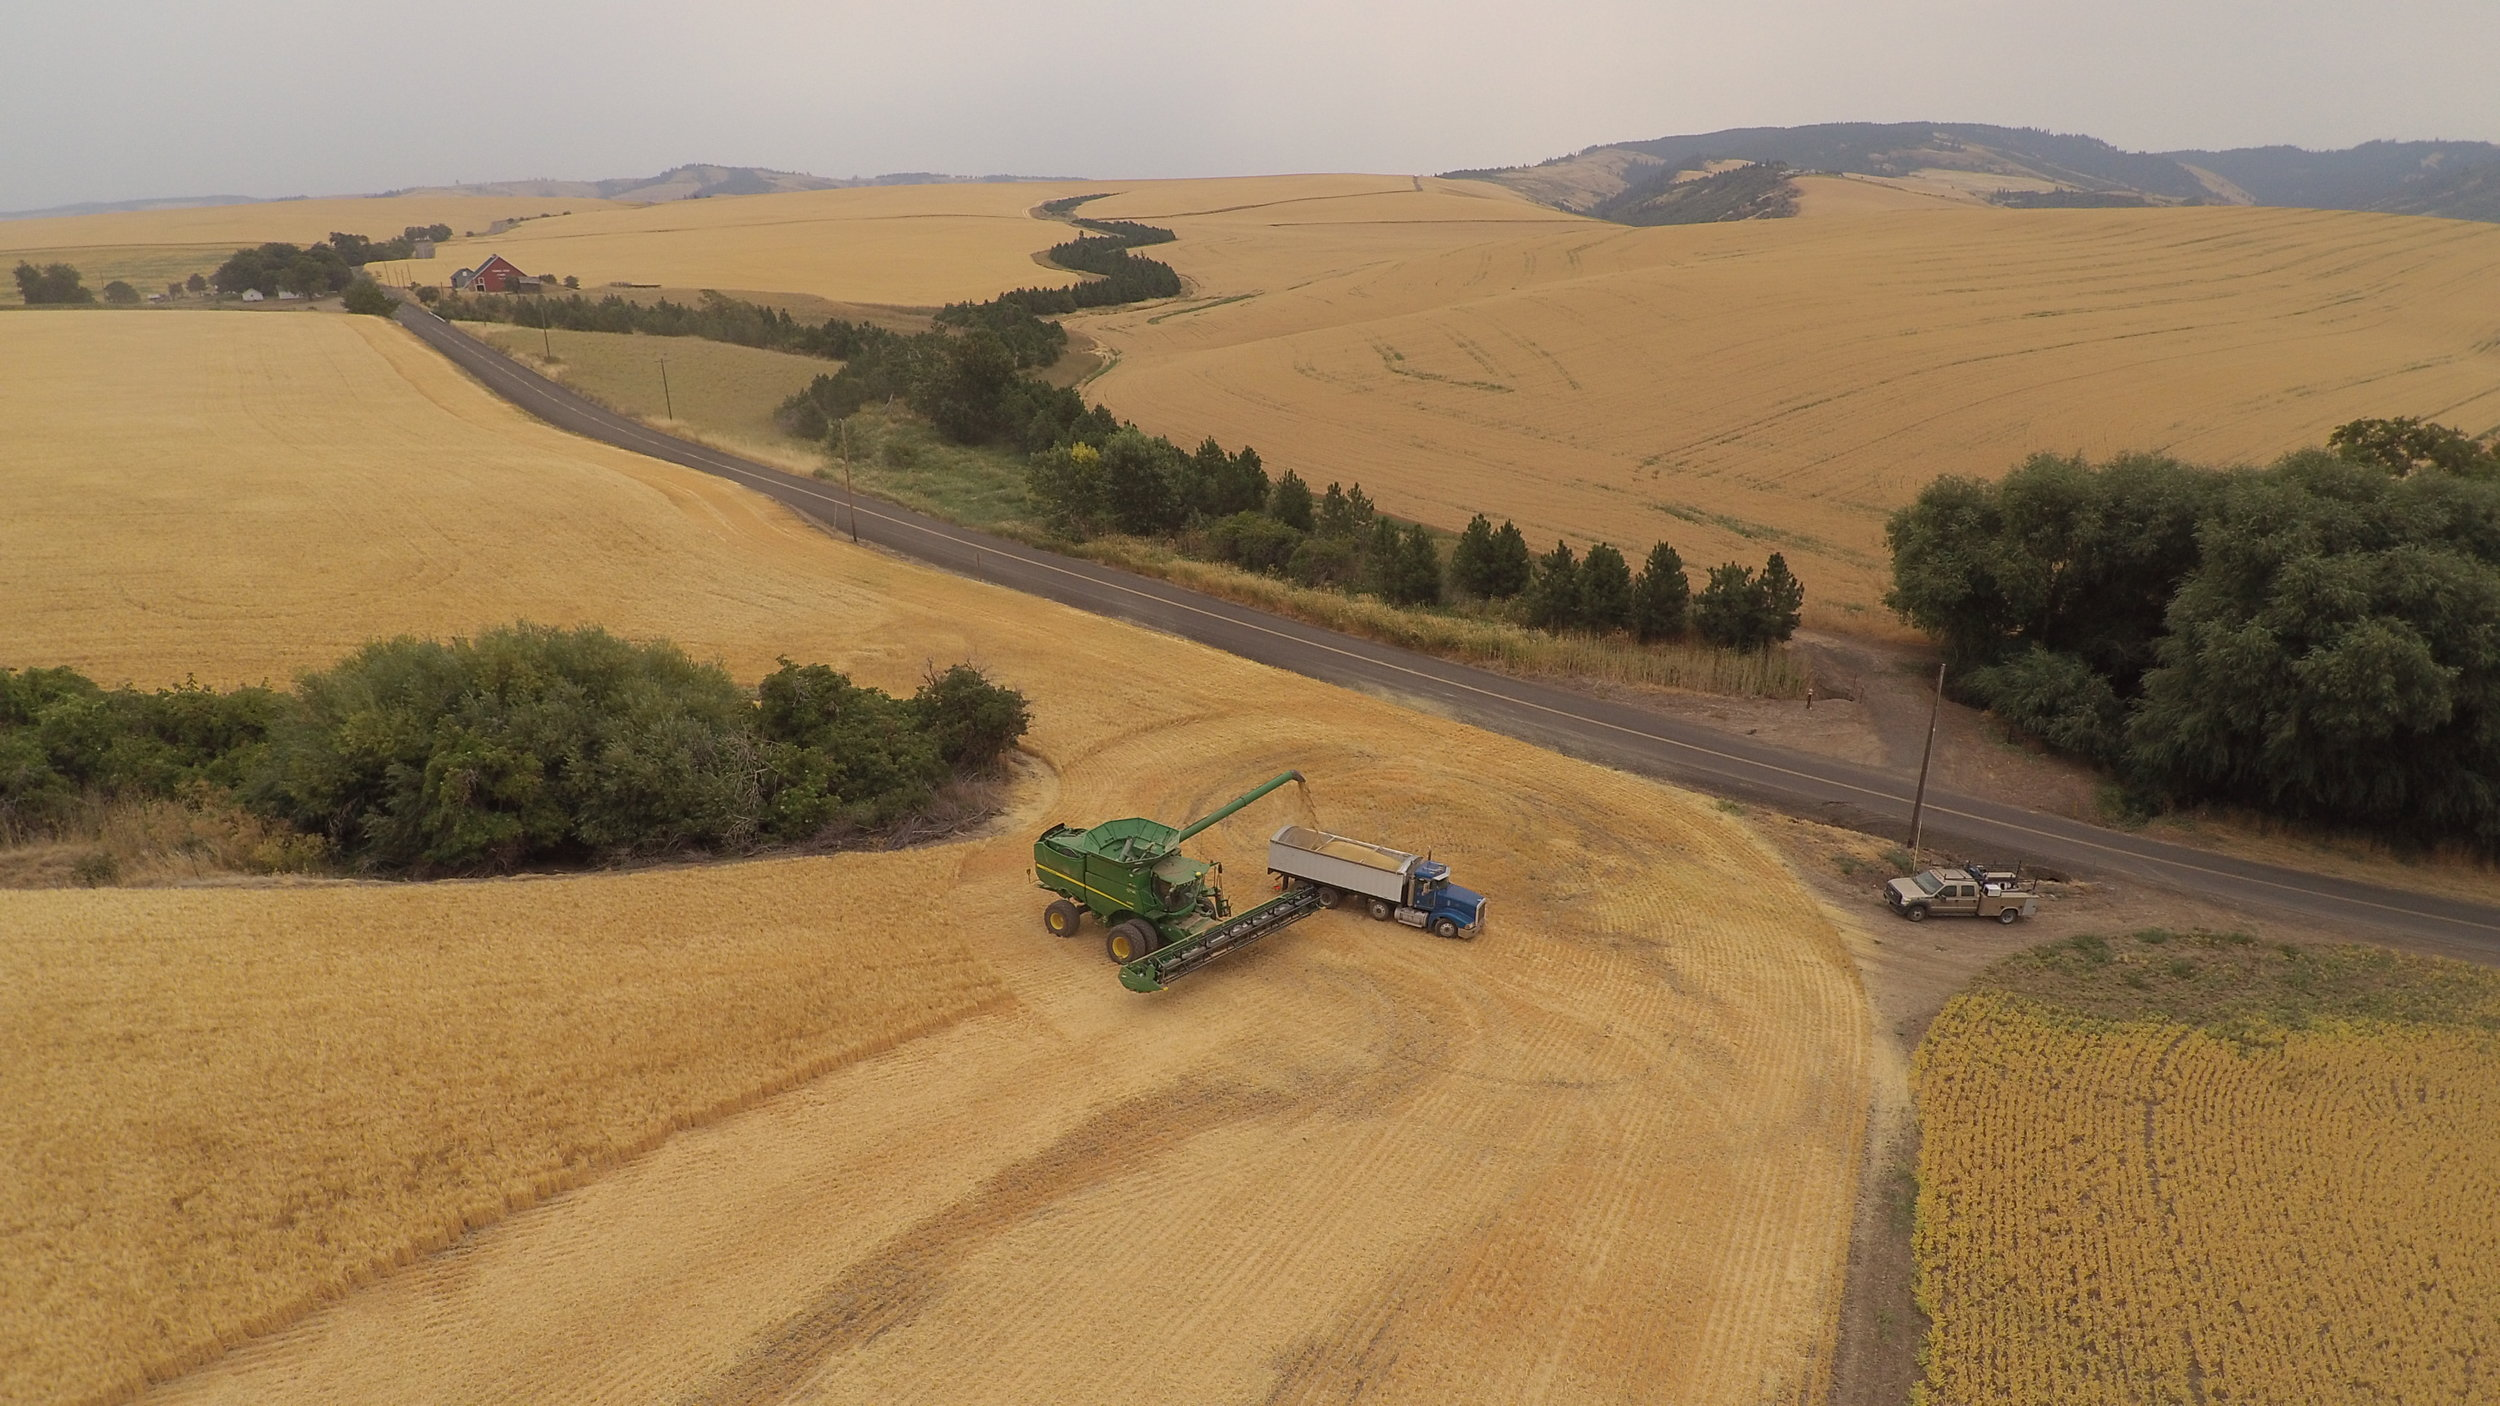 Explore grain lots, services and pricing. - Click here for the details and shoot us an email at sales@mainstemmalt.com to create or join a single-batch group buy.